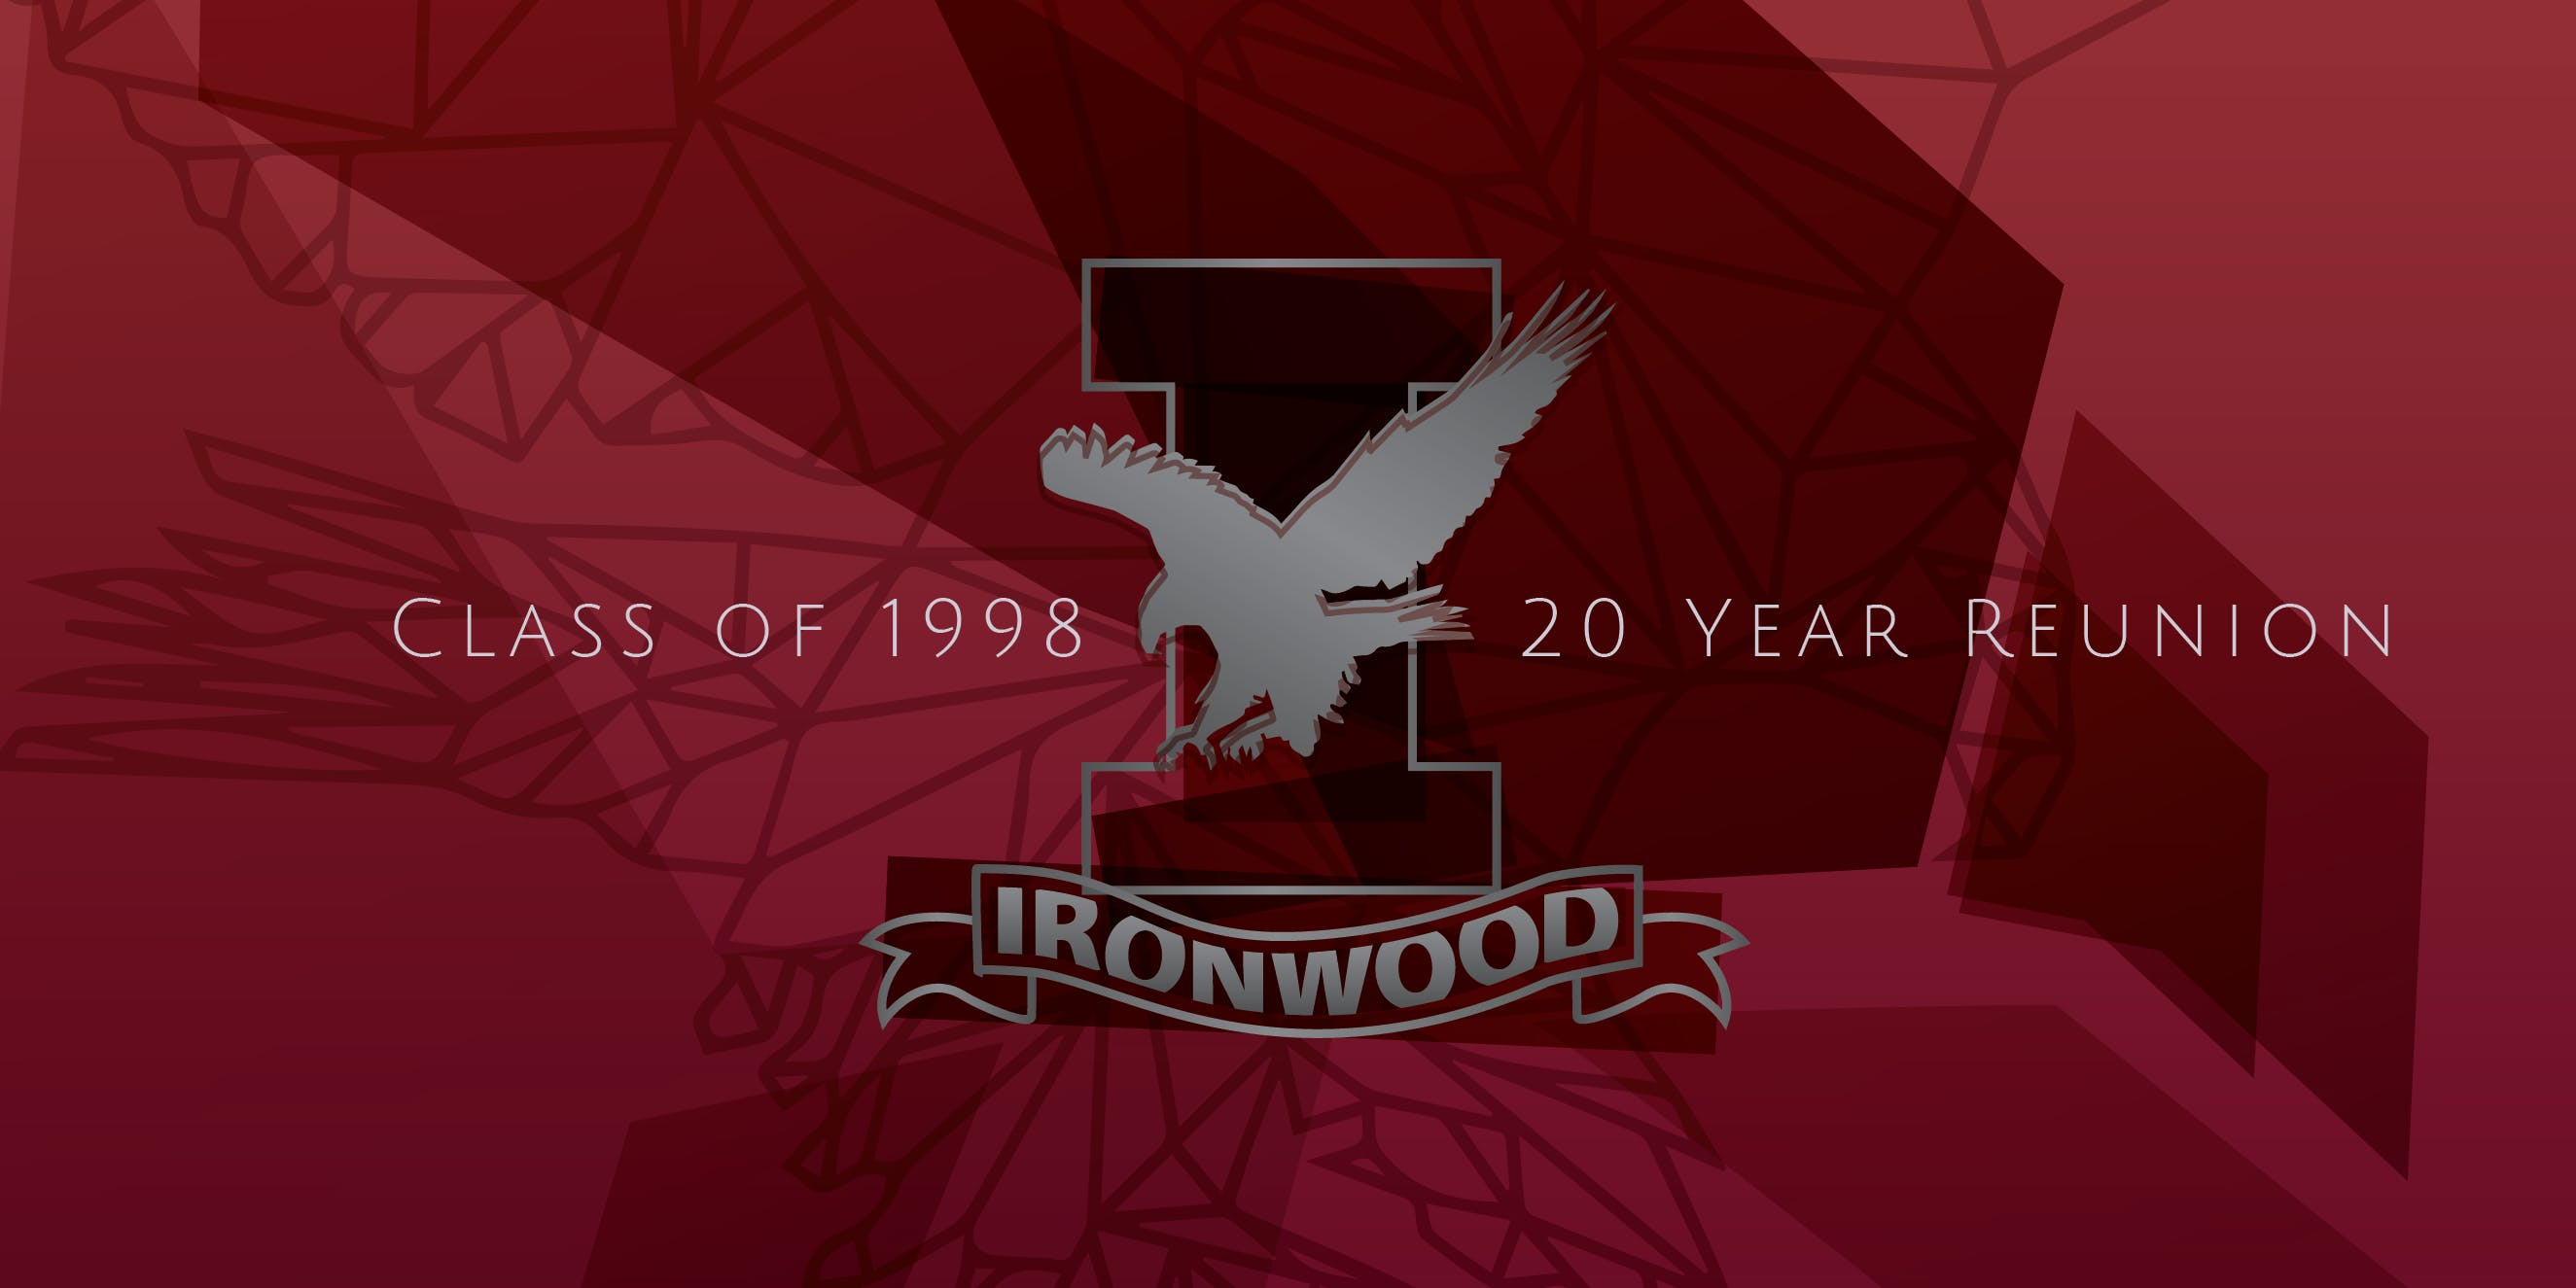 Ironwood High School Class of 1998 20 Year Reunion